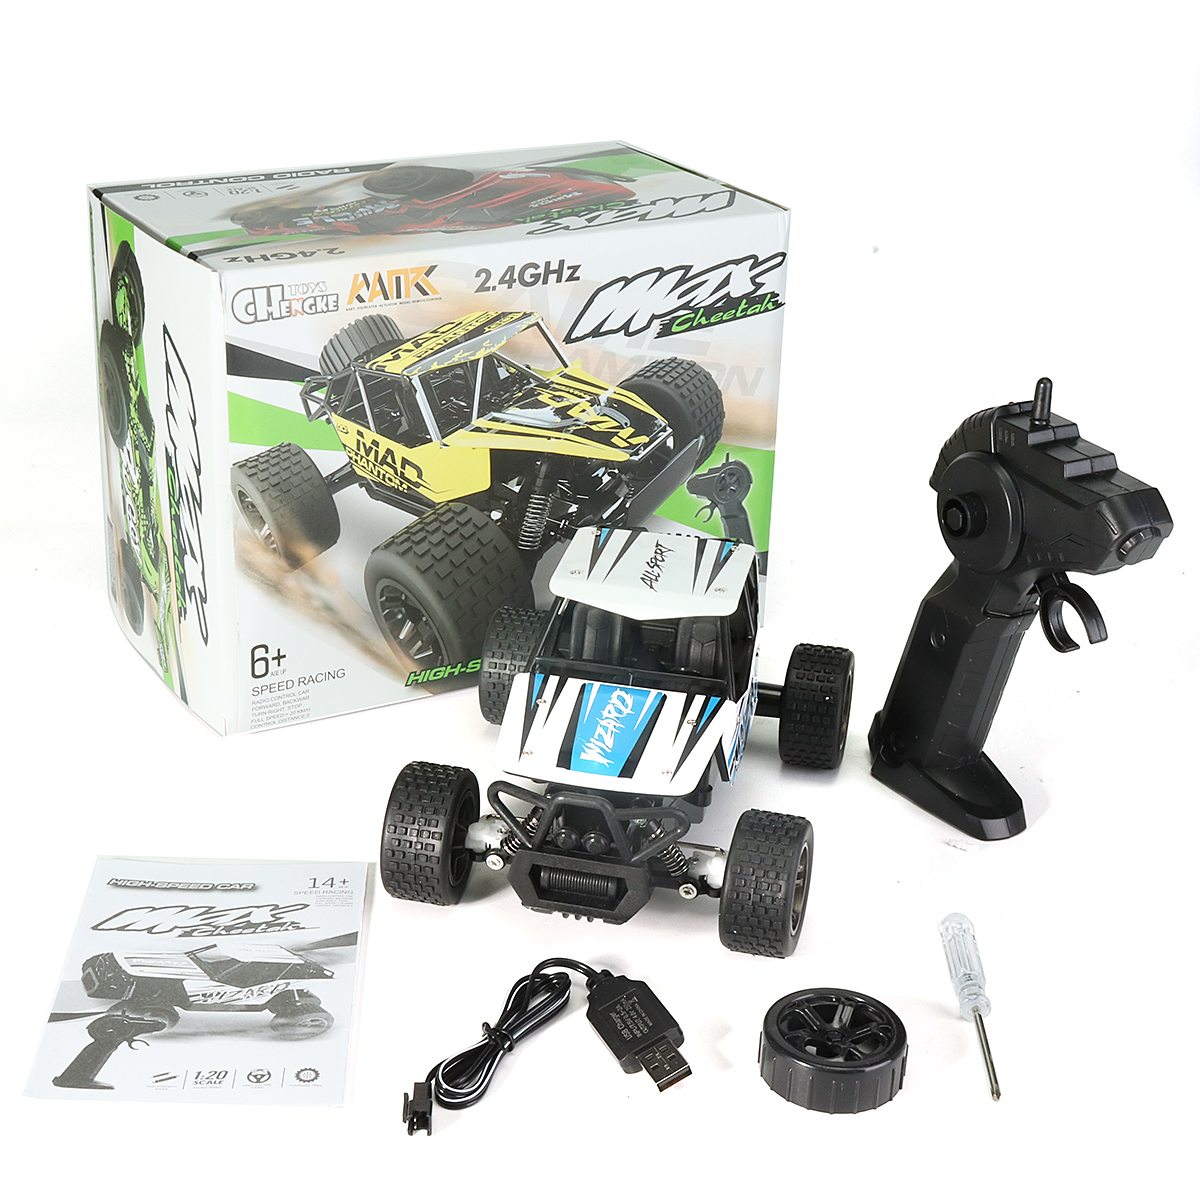 1:20 2.4GHz 4WD High Speed Radio Fast Remote Control RC Car Off-Road Truck RTR Toy For Children Gift